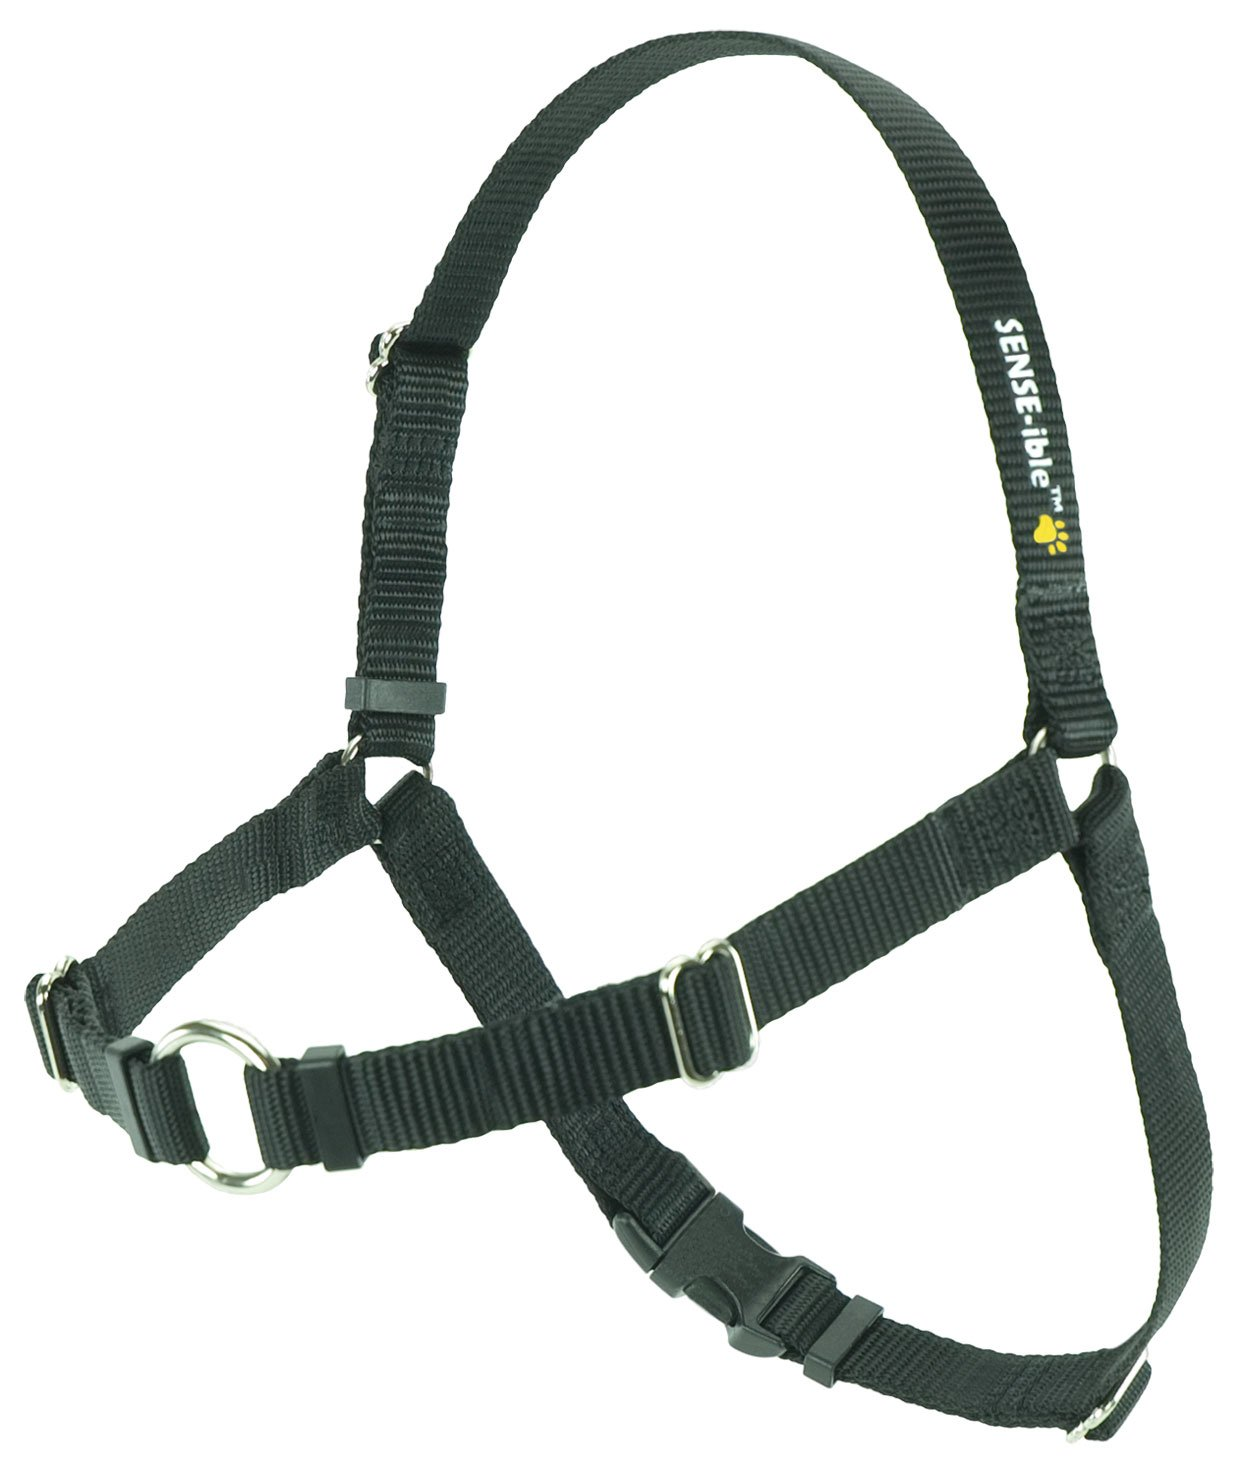 Black Medium Large Narrow Black Medium Large Narrow SENSE-ible No-Pull Dog Harness Black Medium Large (Narrow)